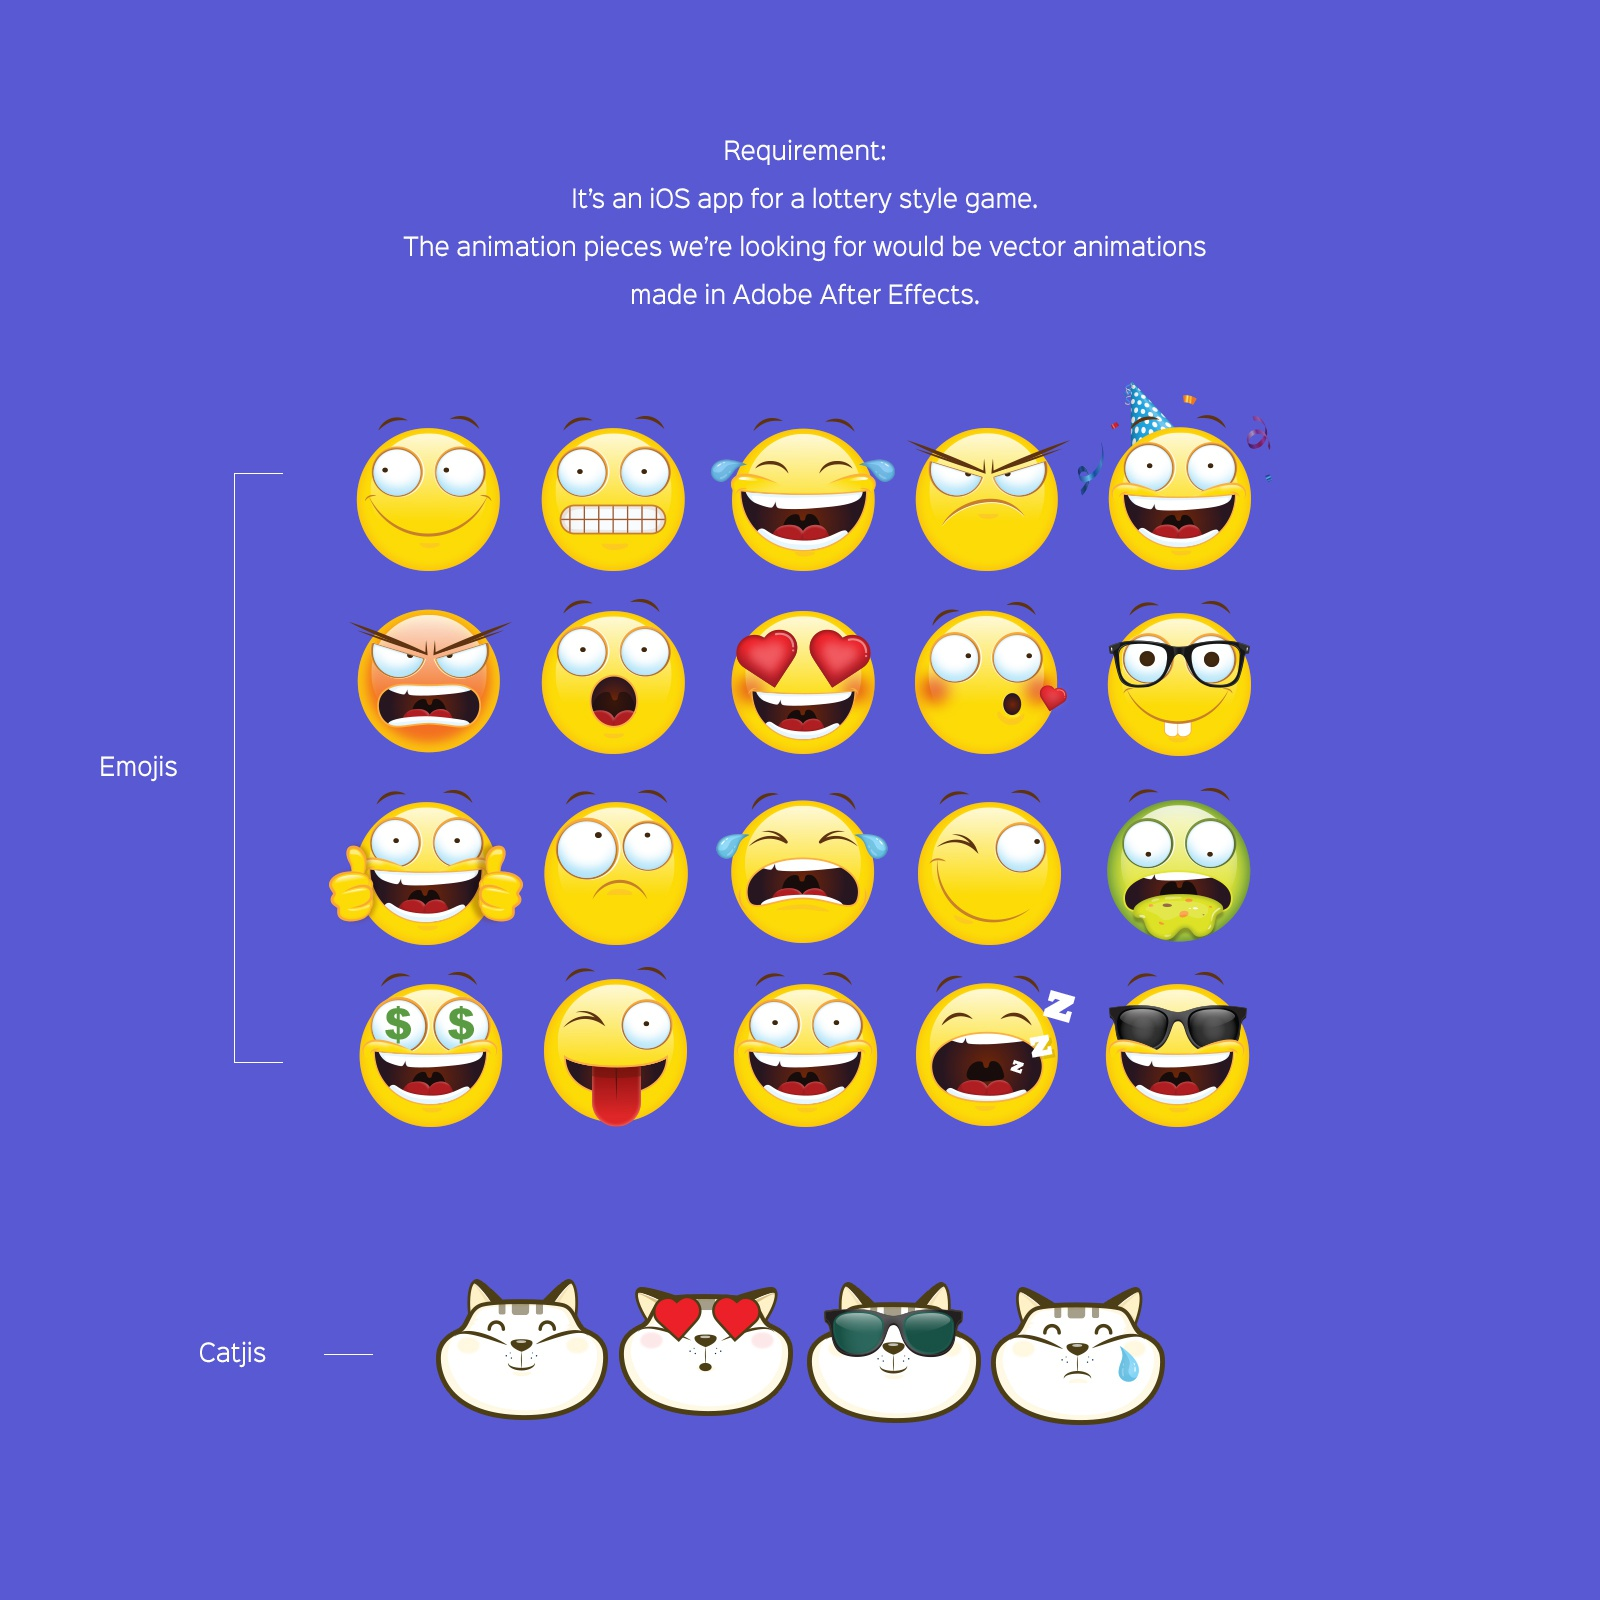 Parminder Kaur / Projects / Lucky Emojis Animation | Dribbble